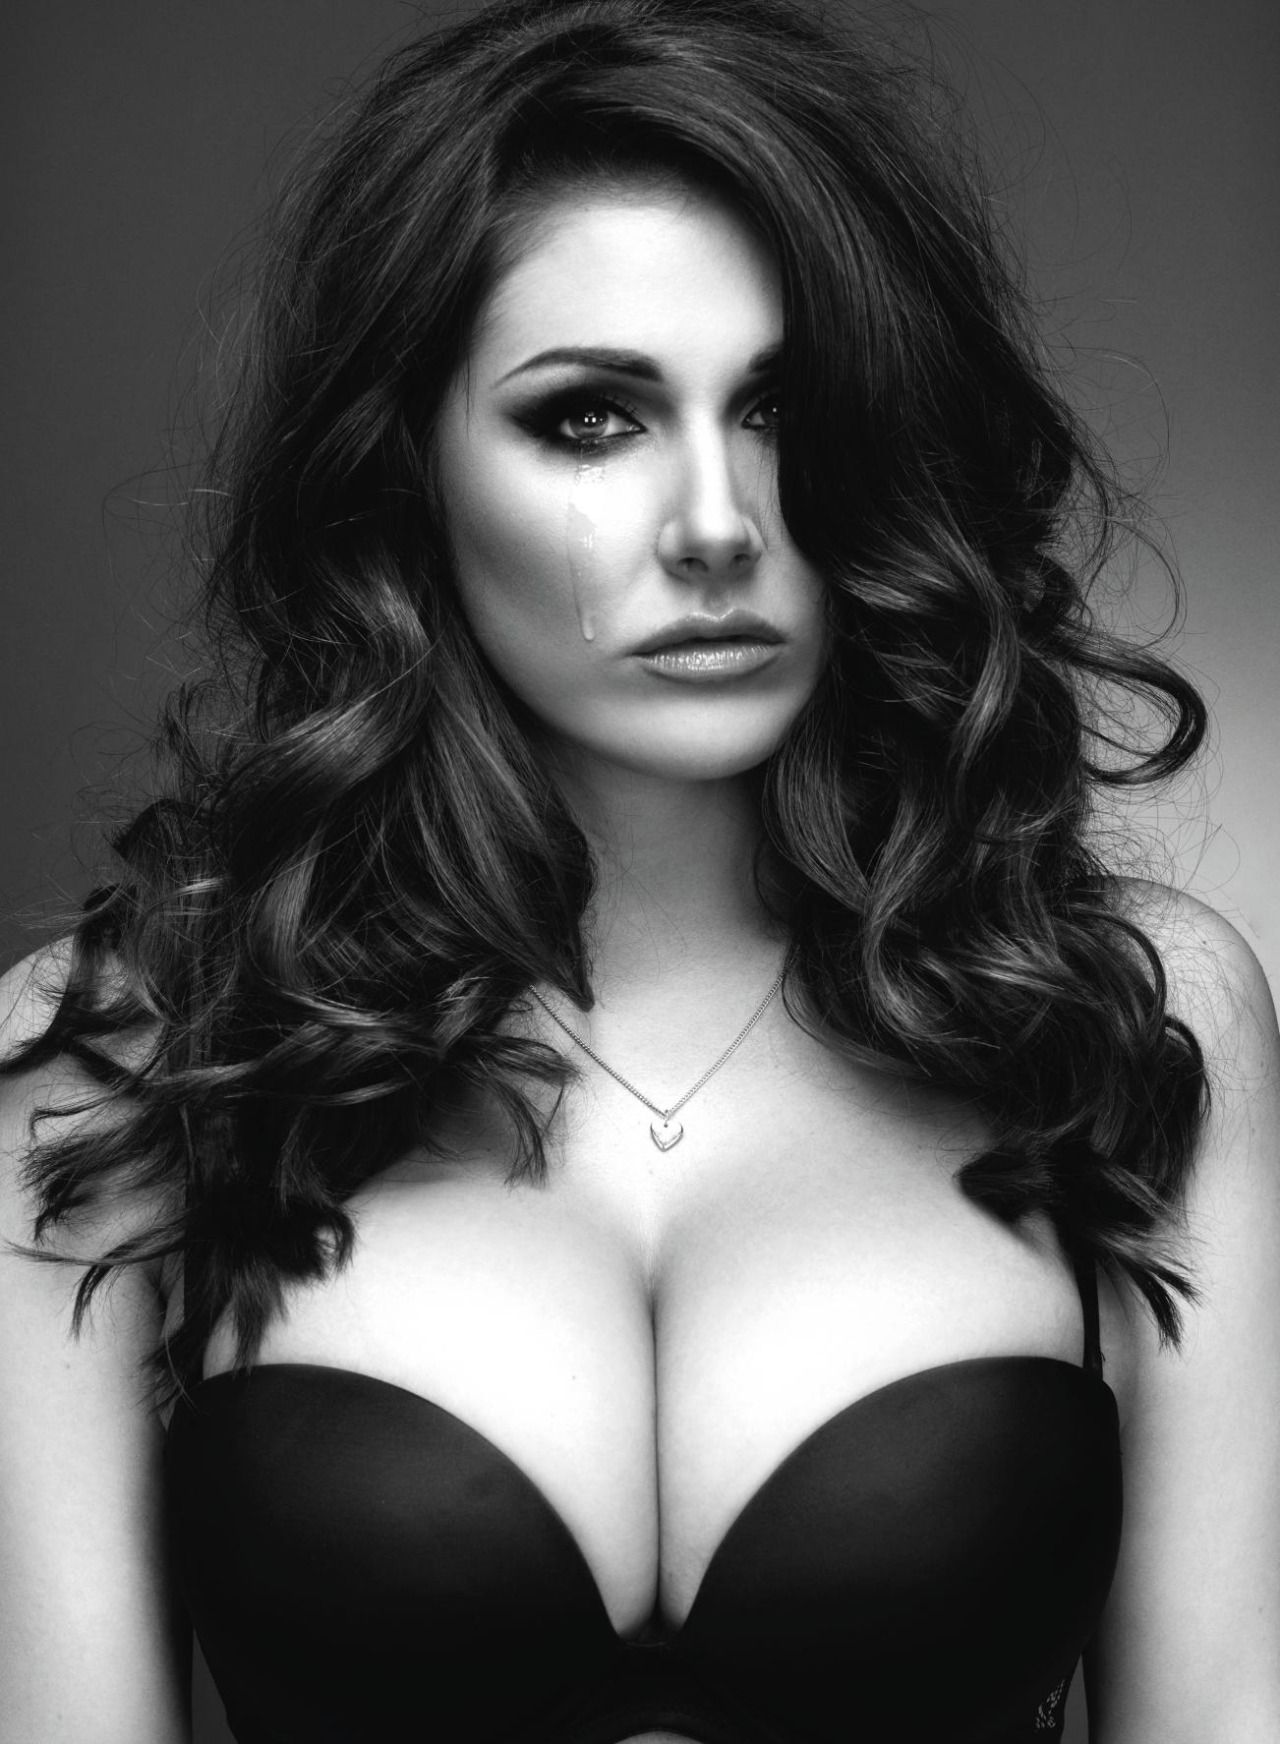 Pinder hot lucy Lucy Pinder